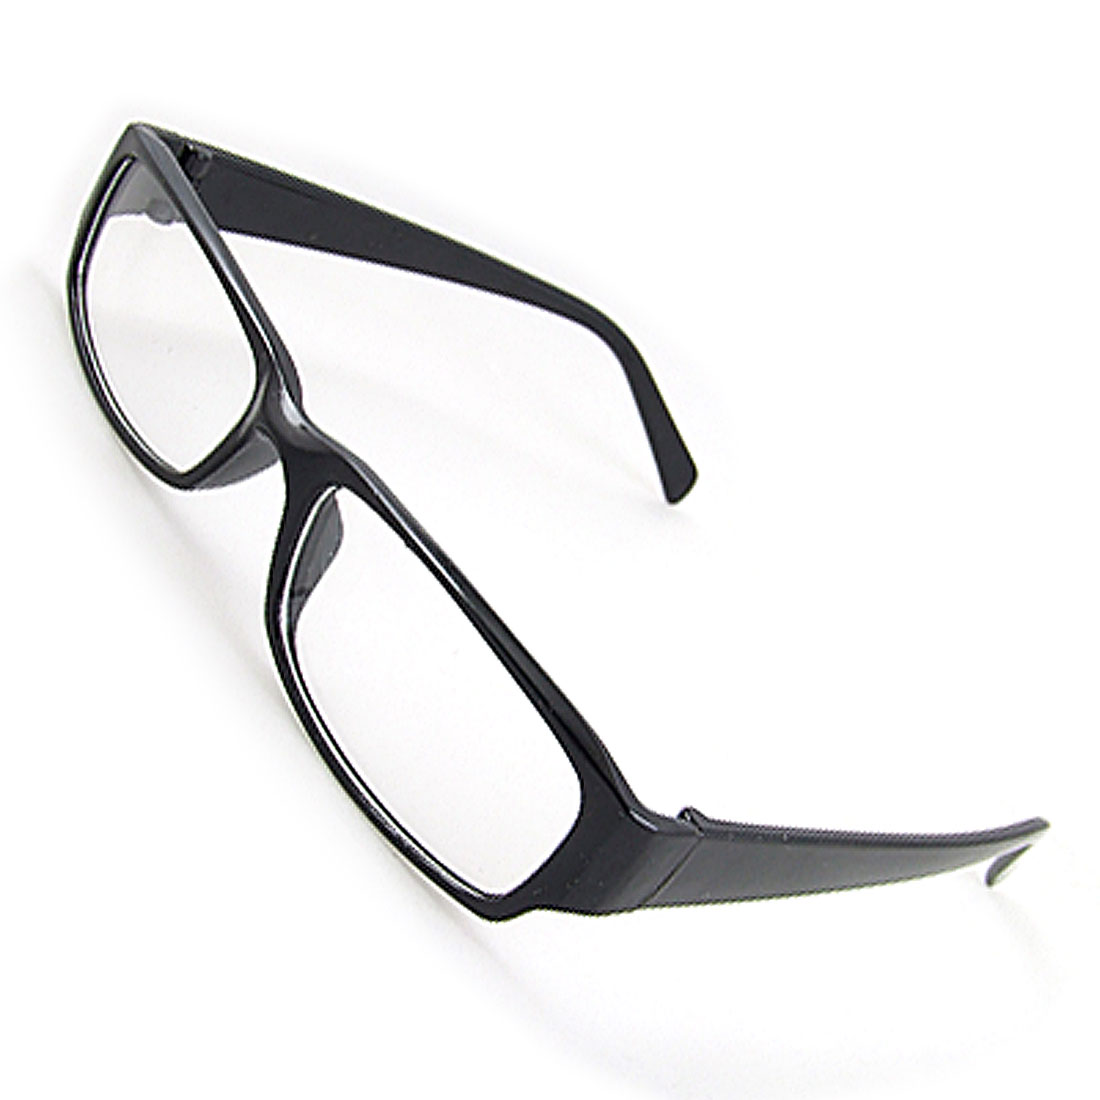 Unisex Black Frame Full Rim Clear Lens Plano Eyewear Glasses